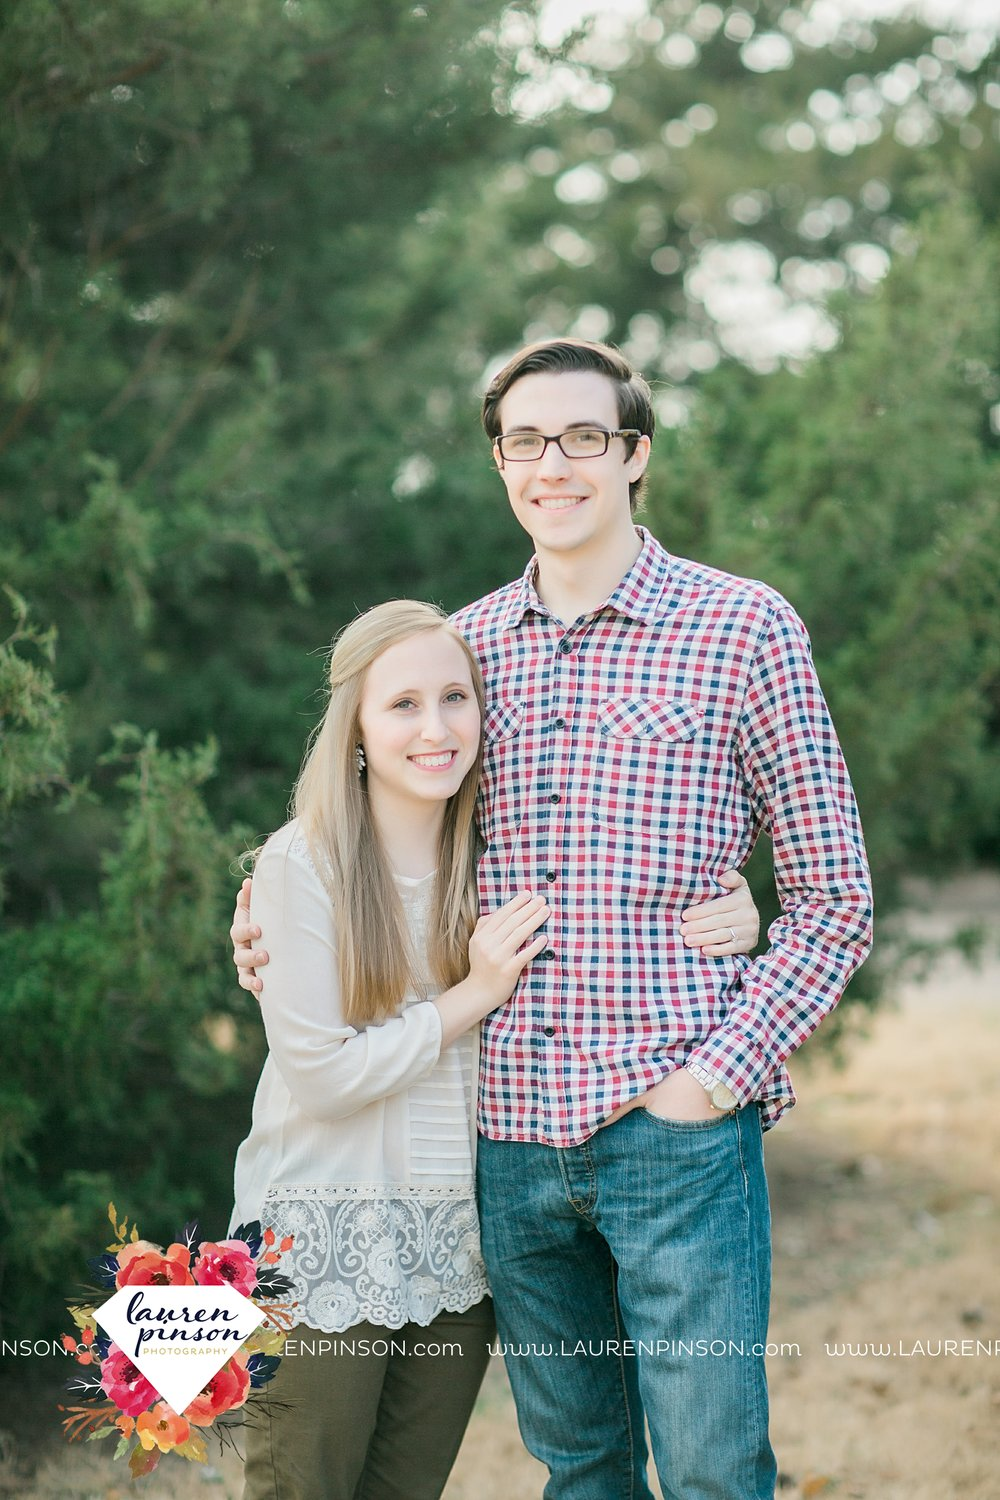 katie-and-joshua-frank-and-joes-wichita-falls-engagement-session-lake-wichita-park-lauren-pinson-photography-00001.jpg